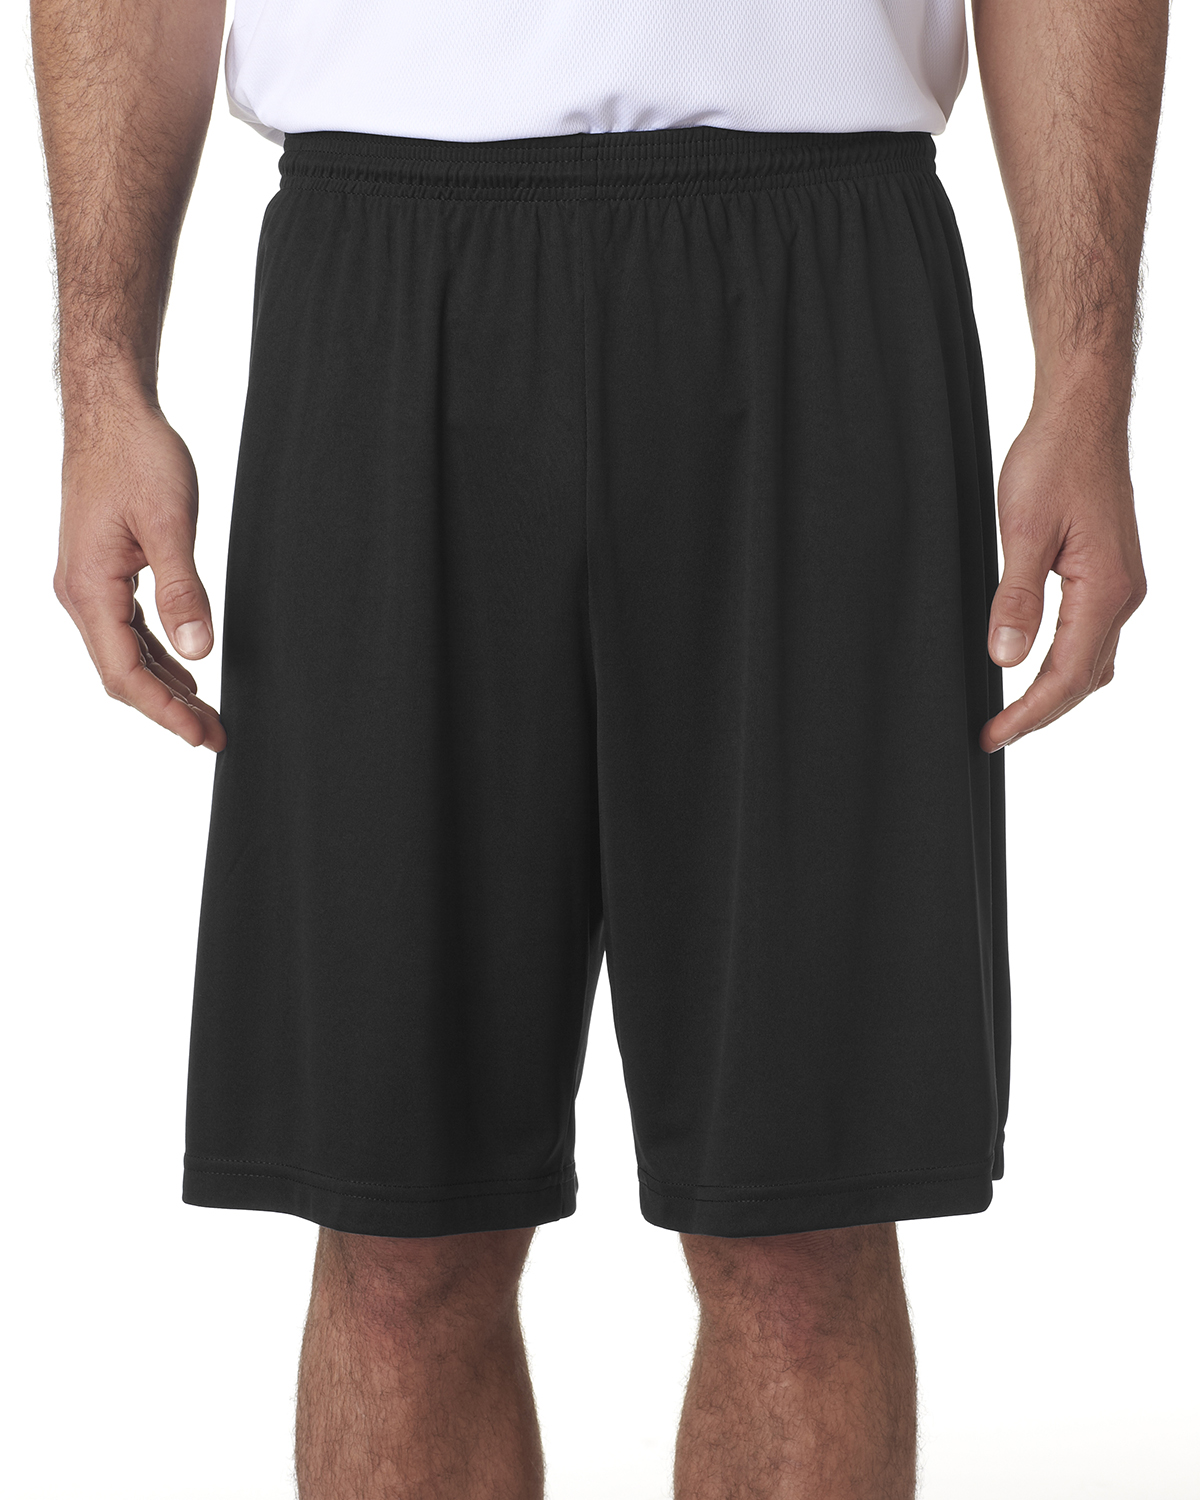 "A4 N5283 - Adult Cooling Performance 9"" Shorts"